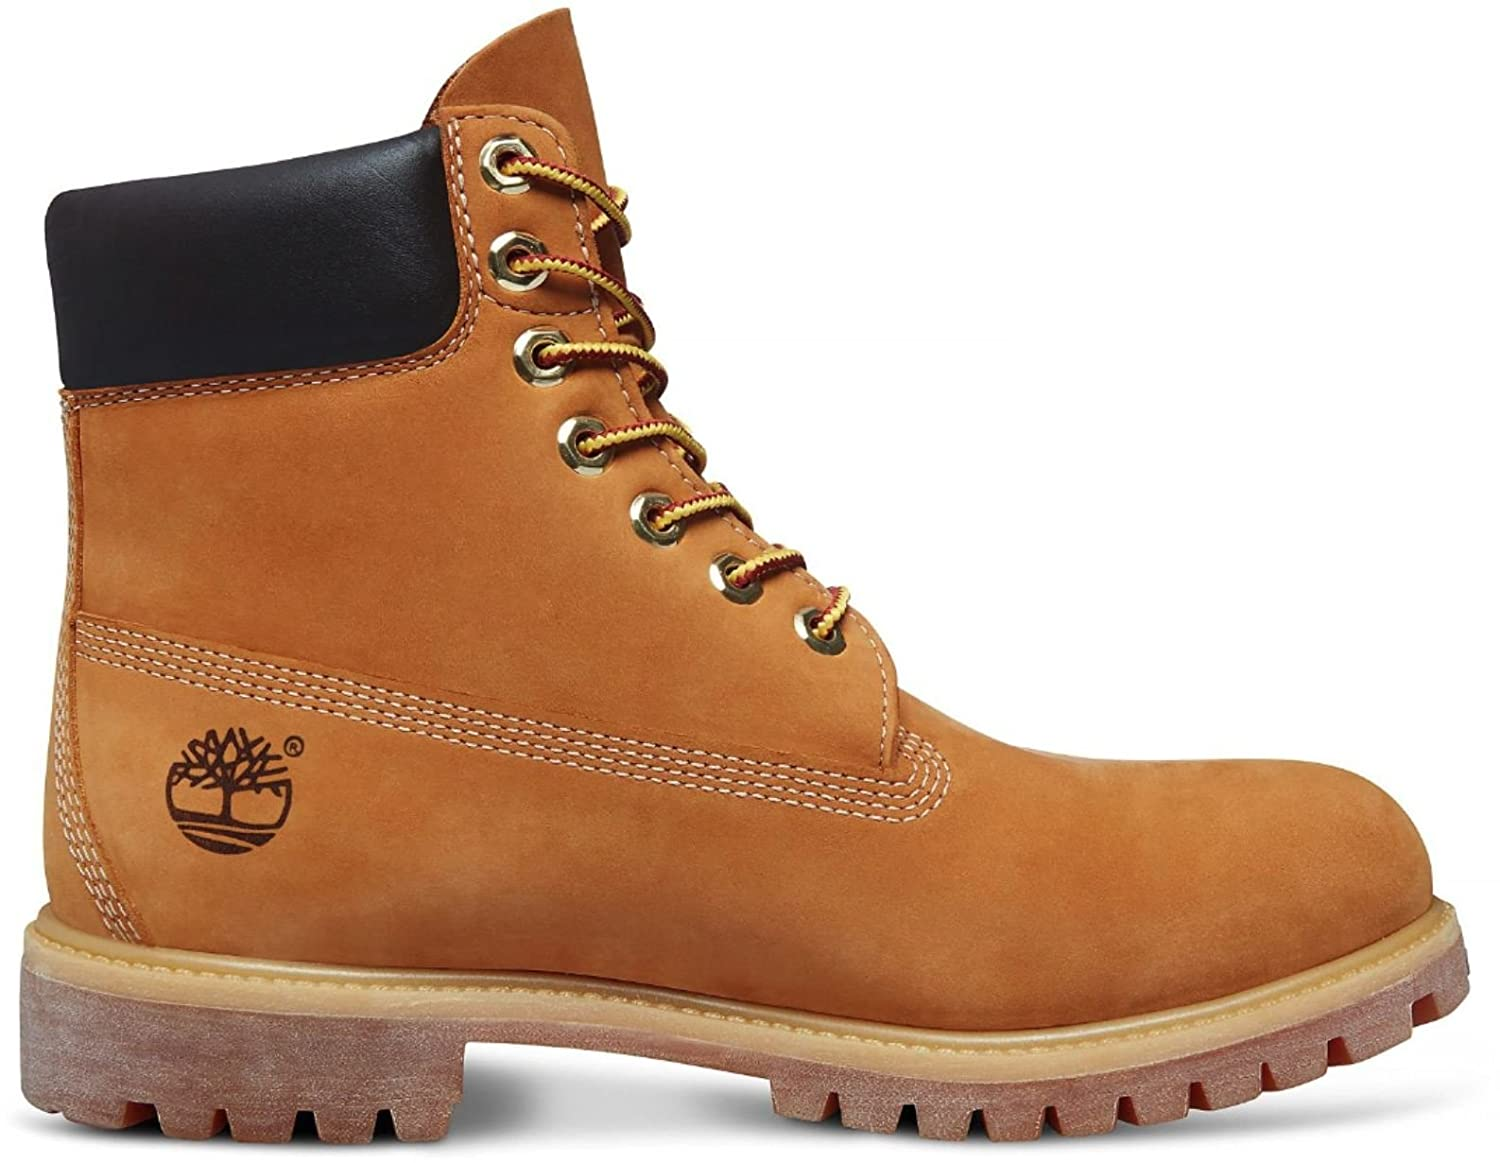 25e474ea20f Timberland 10061 Mens 6 Inch Premium Waterproof Boots: Amazon.co.uk: Shoes  & Bags